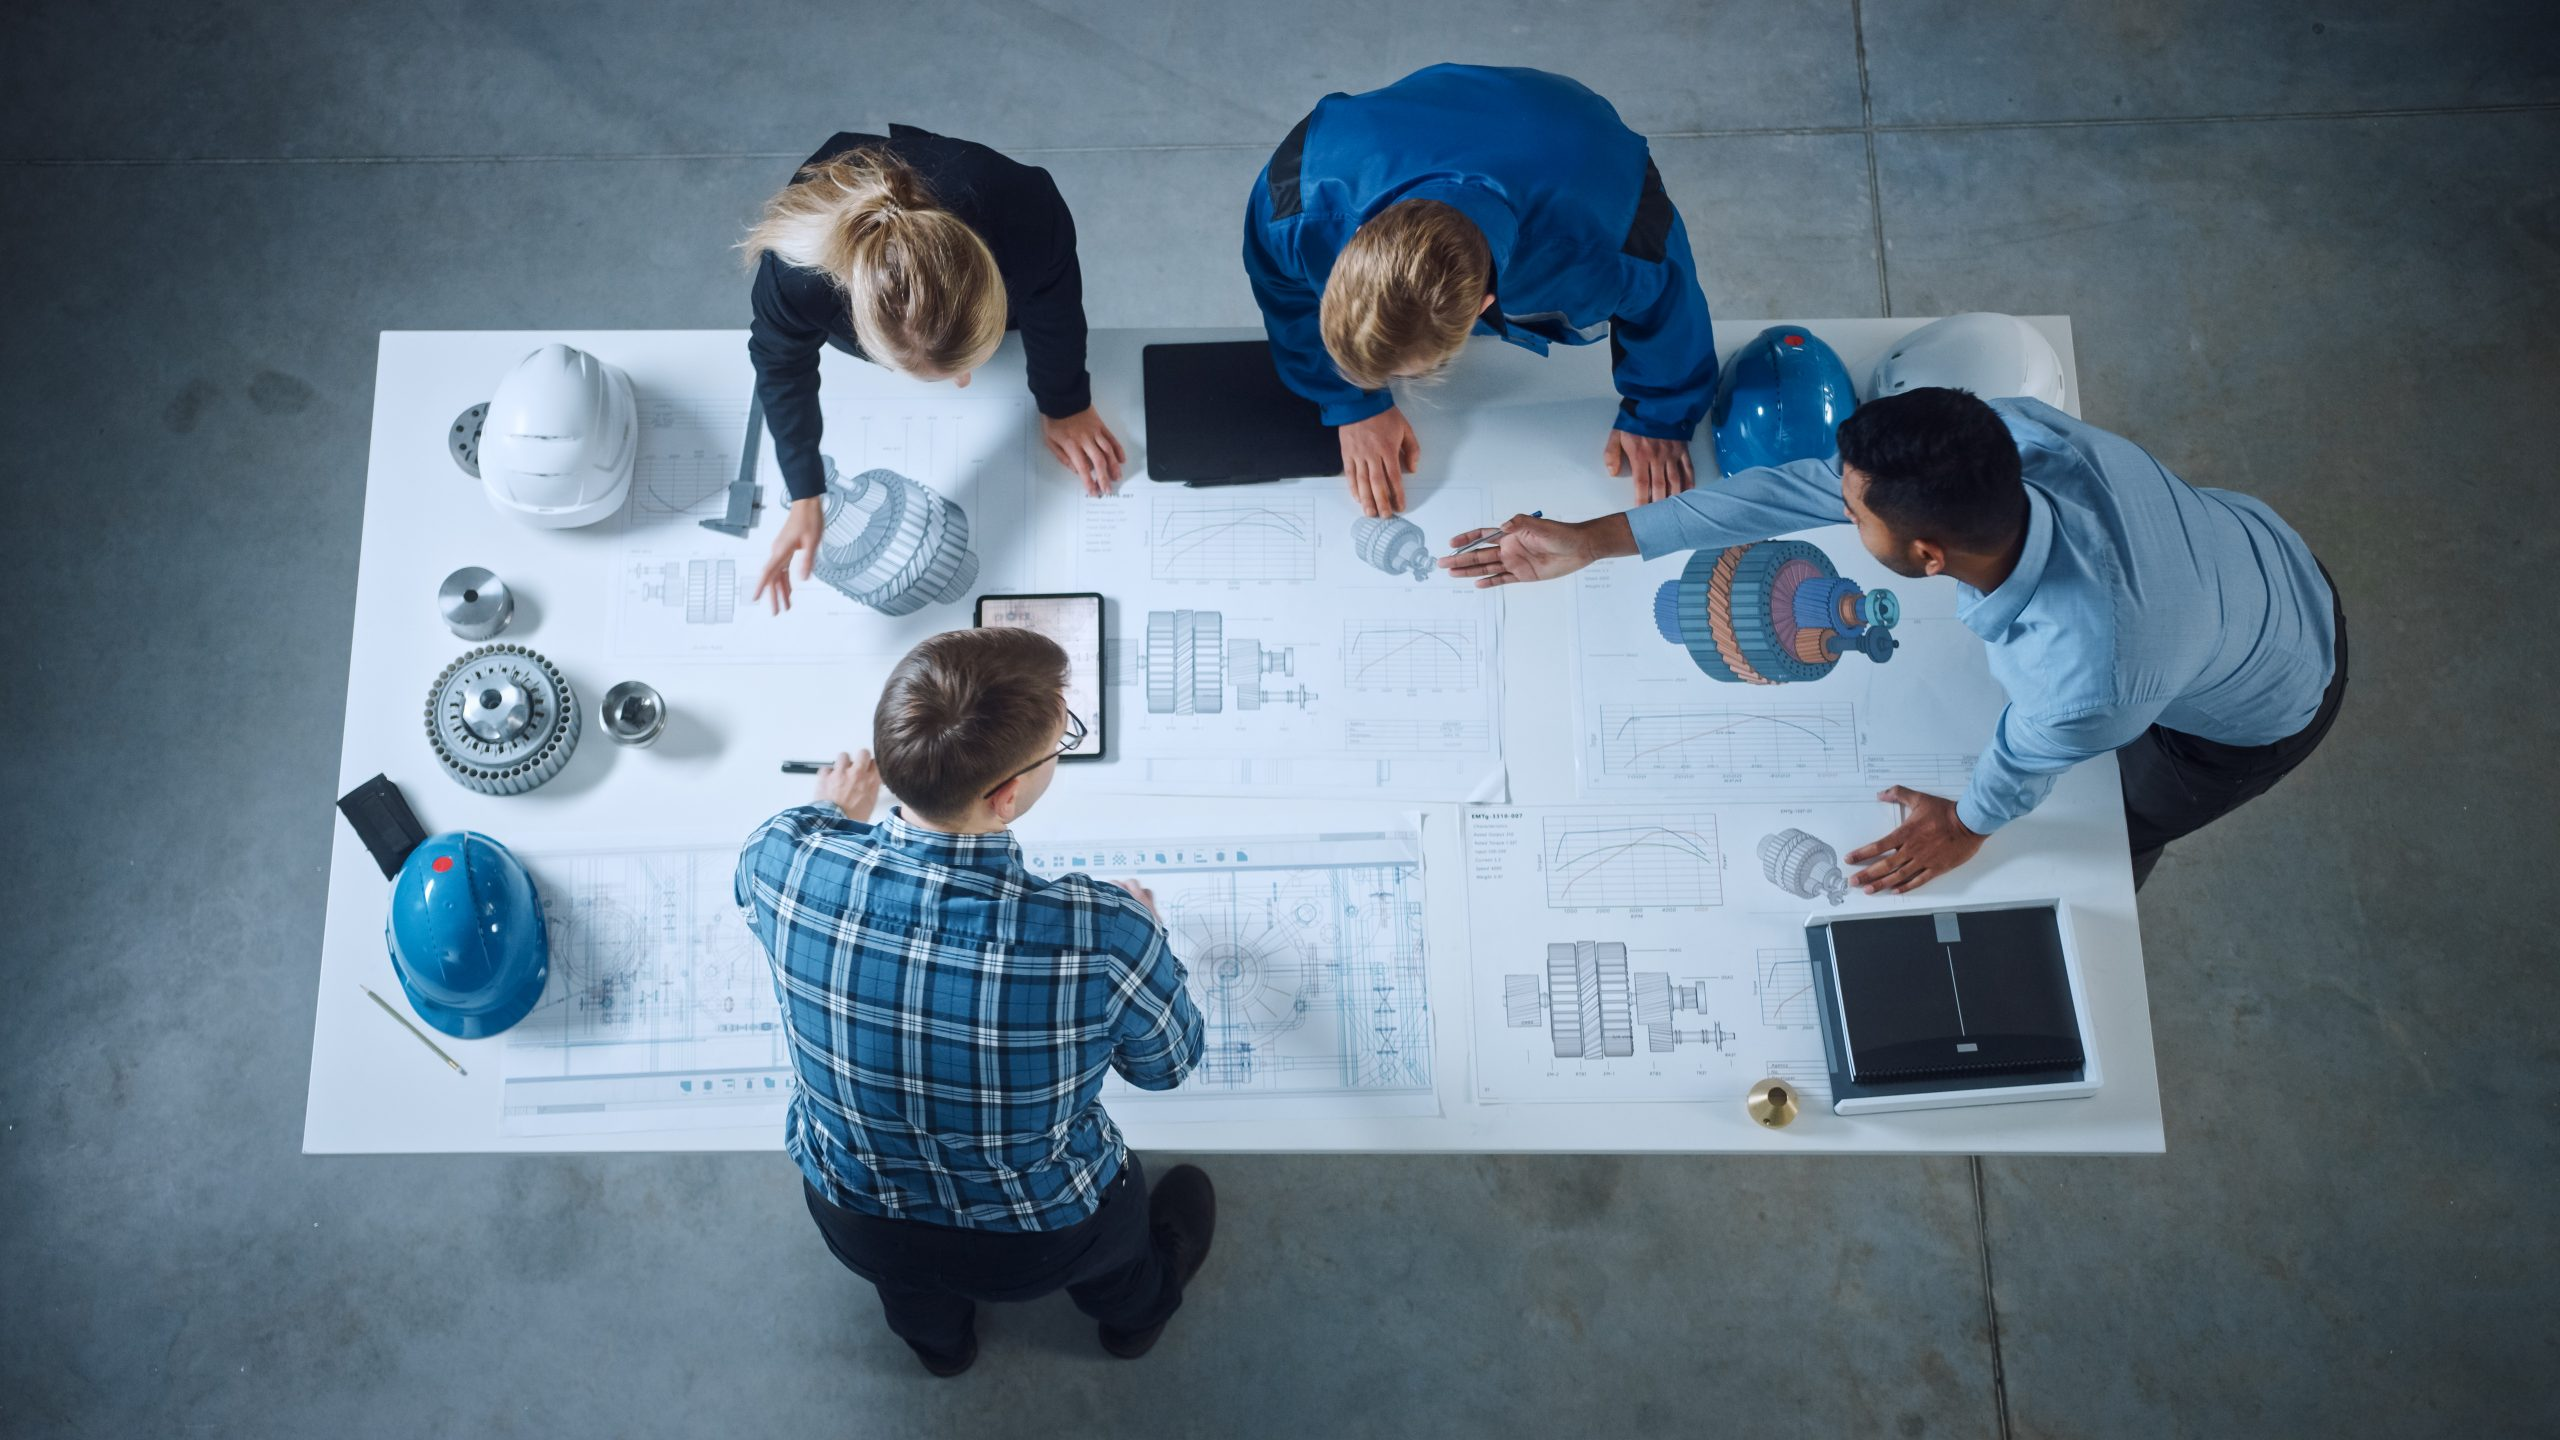 Team of Engineers Lean Over Table, Analyze Machinery Blueprints, Consult Project on Tablet Computer